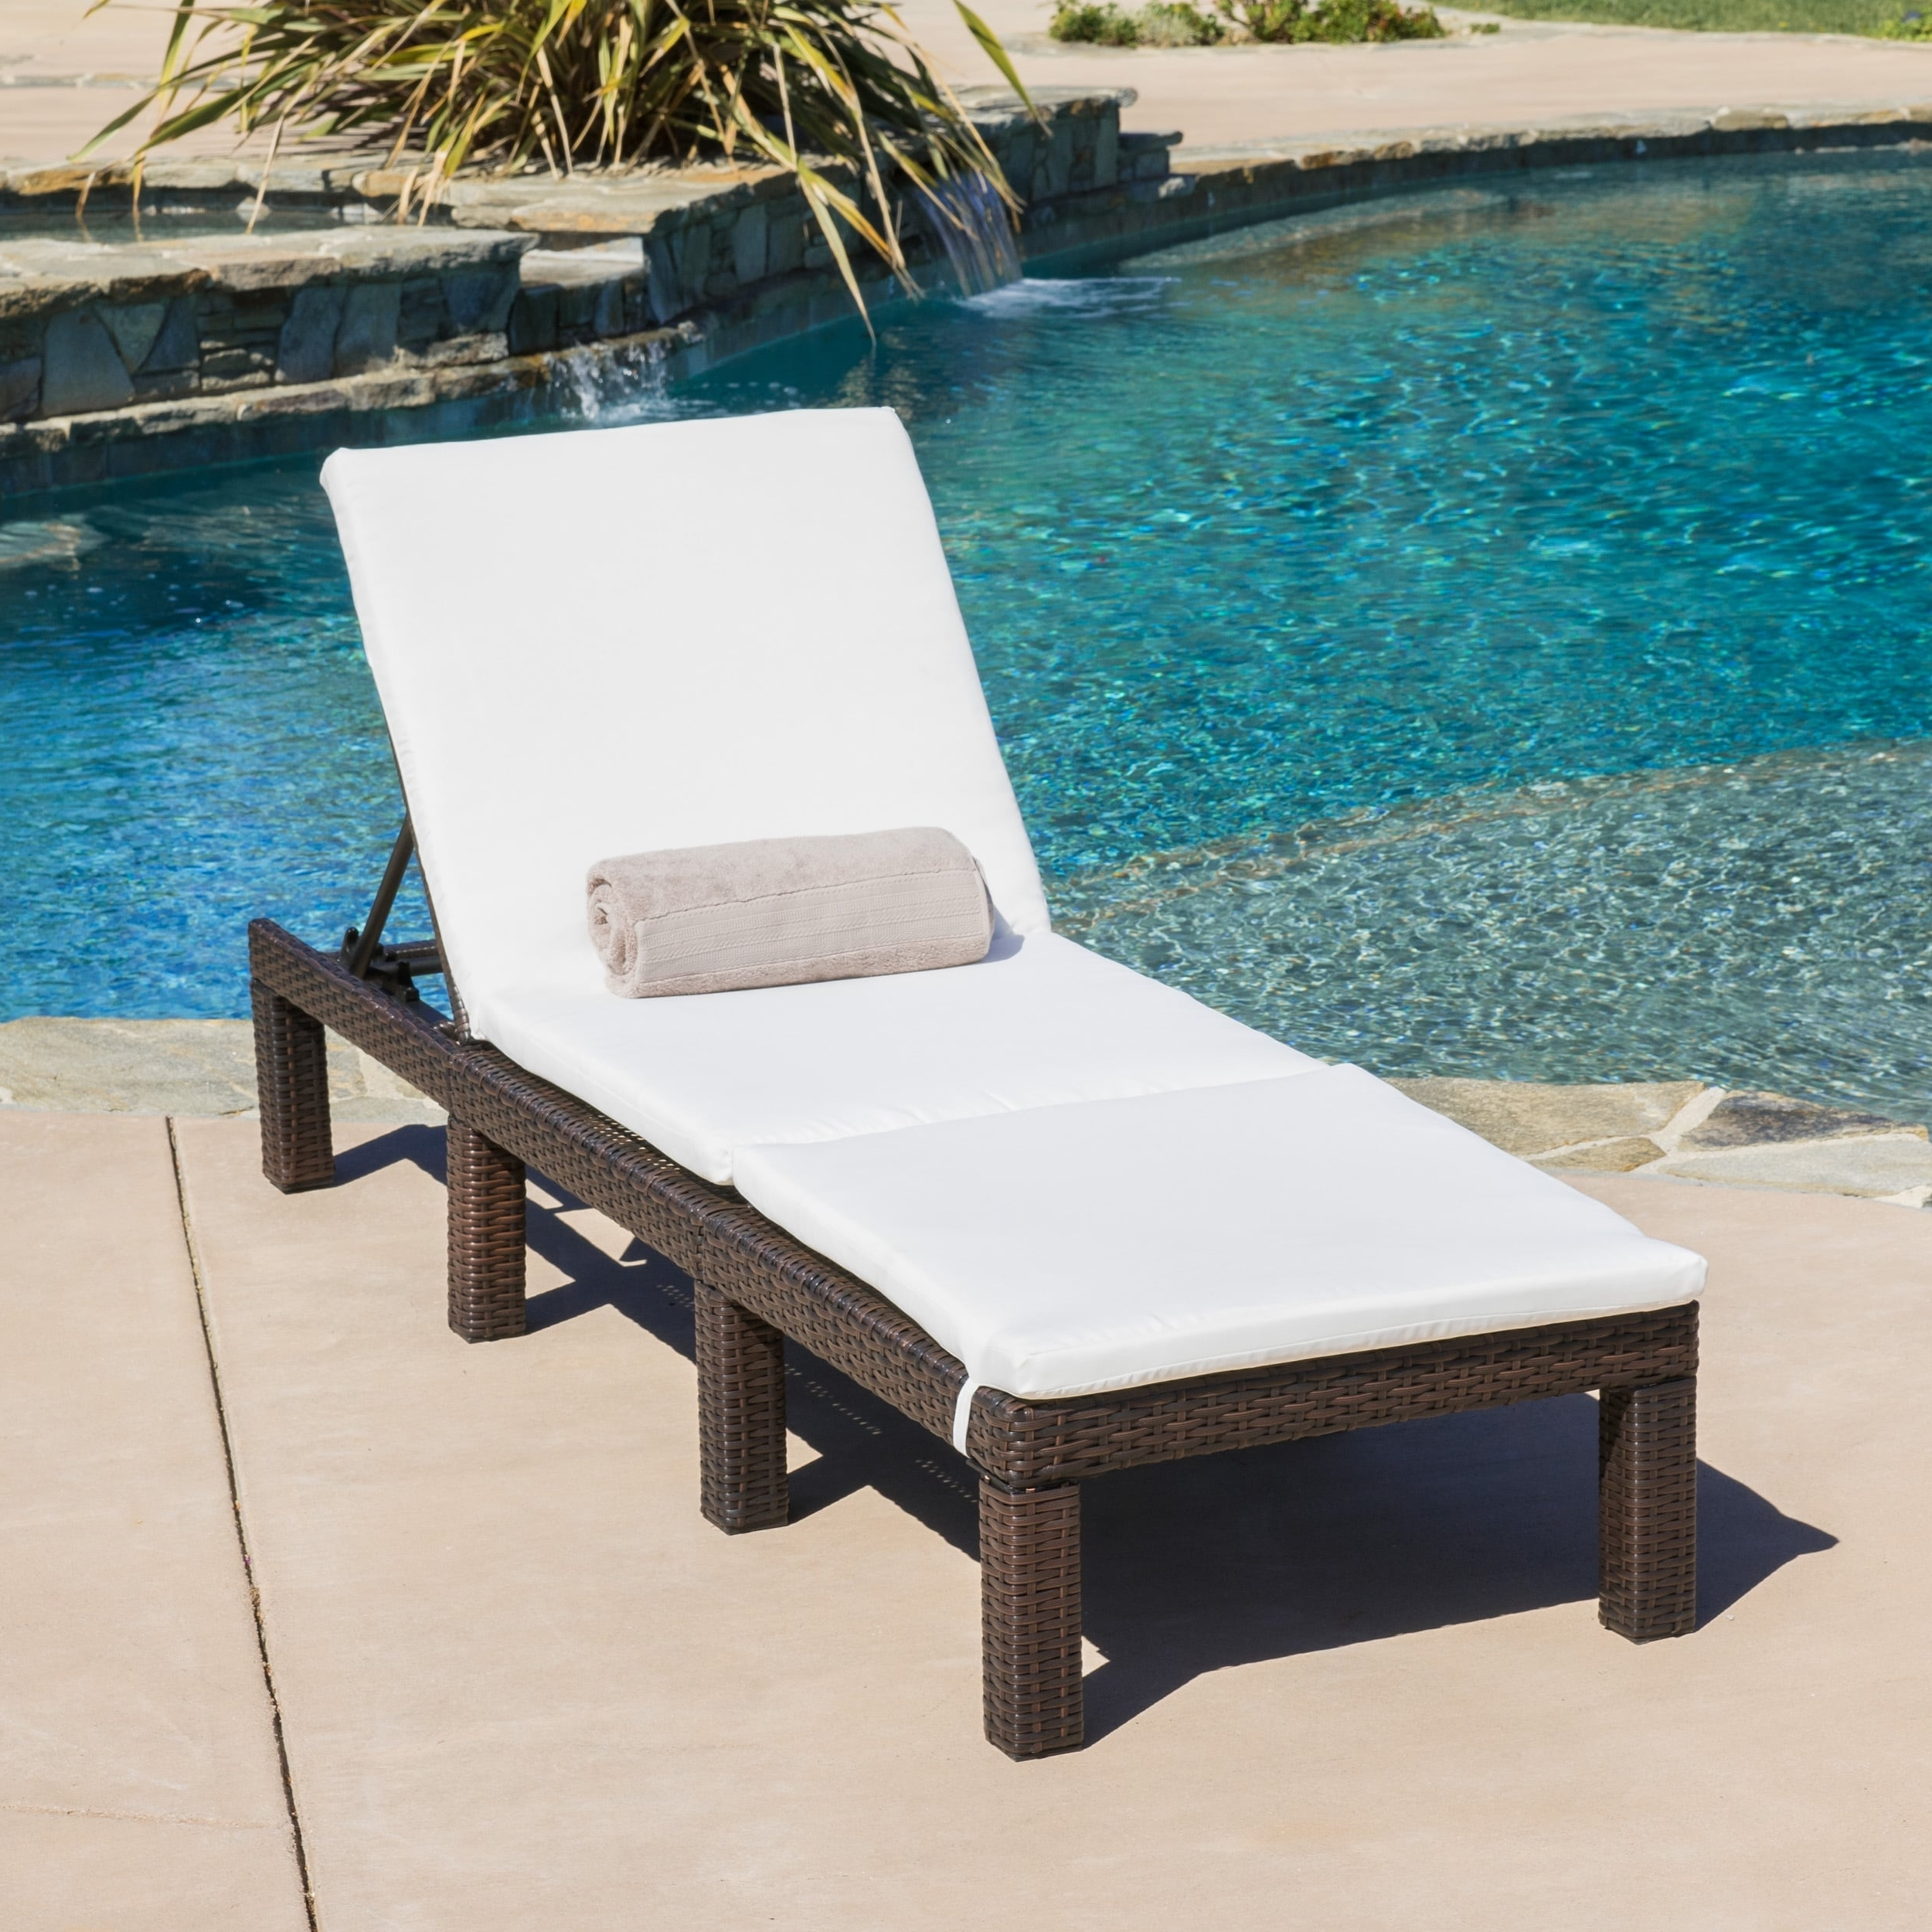 Overstock Outdoor Chaise Lounge Chairs Regarding Latest Jamaica Outdoor Chaise Lounge With Cushion (Set Of 2) (View 2 of 15)